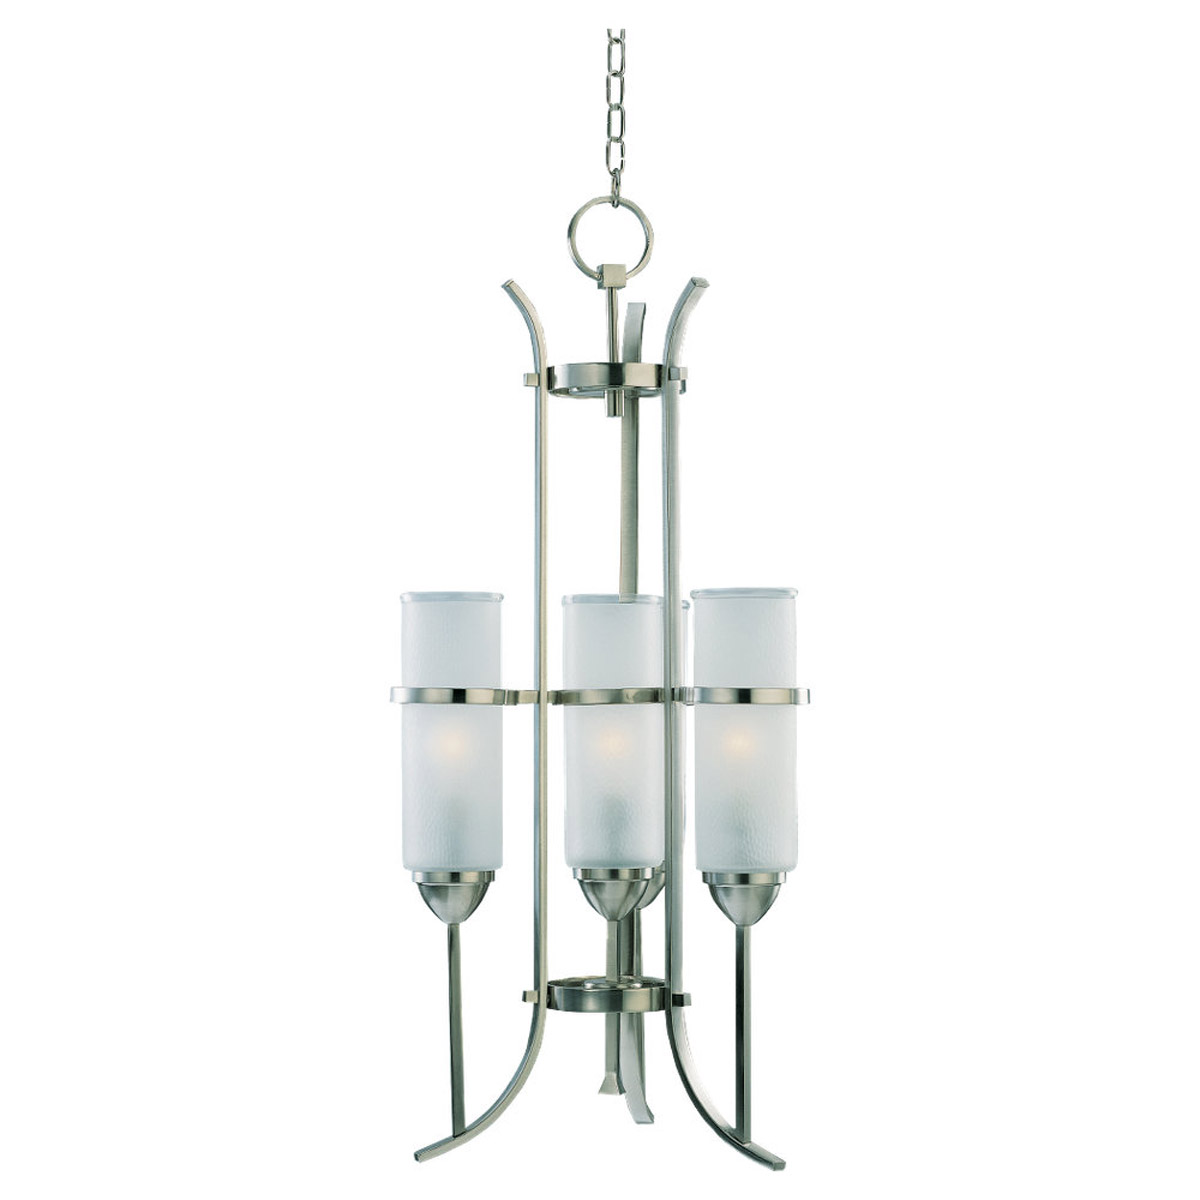 Sea Gull Lighting Eternity 4 Light Chandelier in Brushed Nickel 51115-962 photo